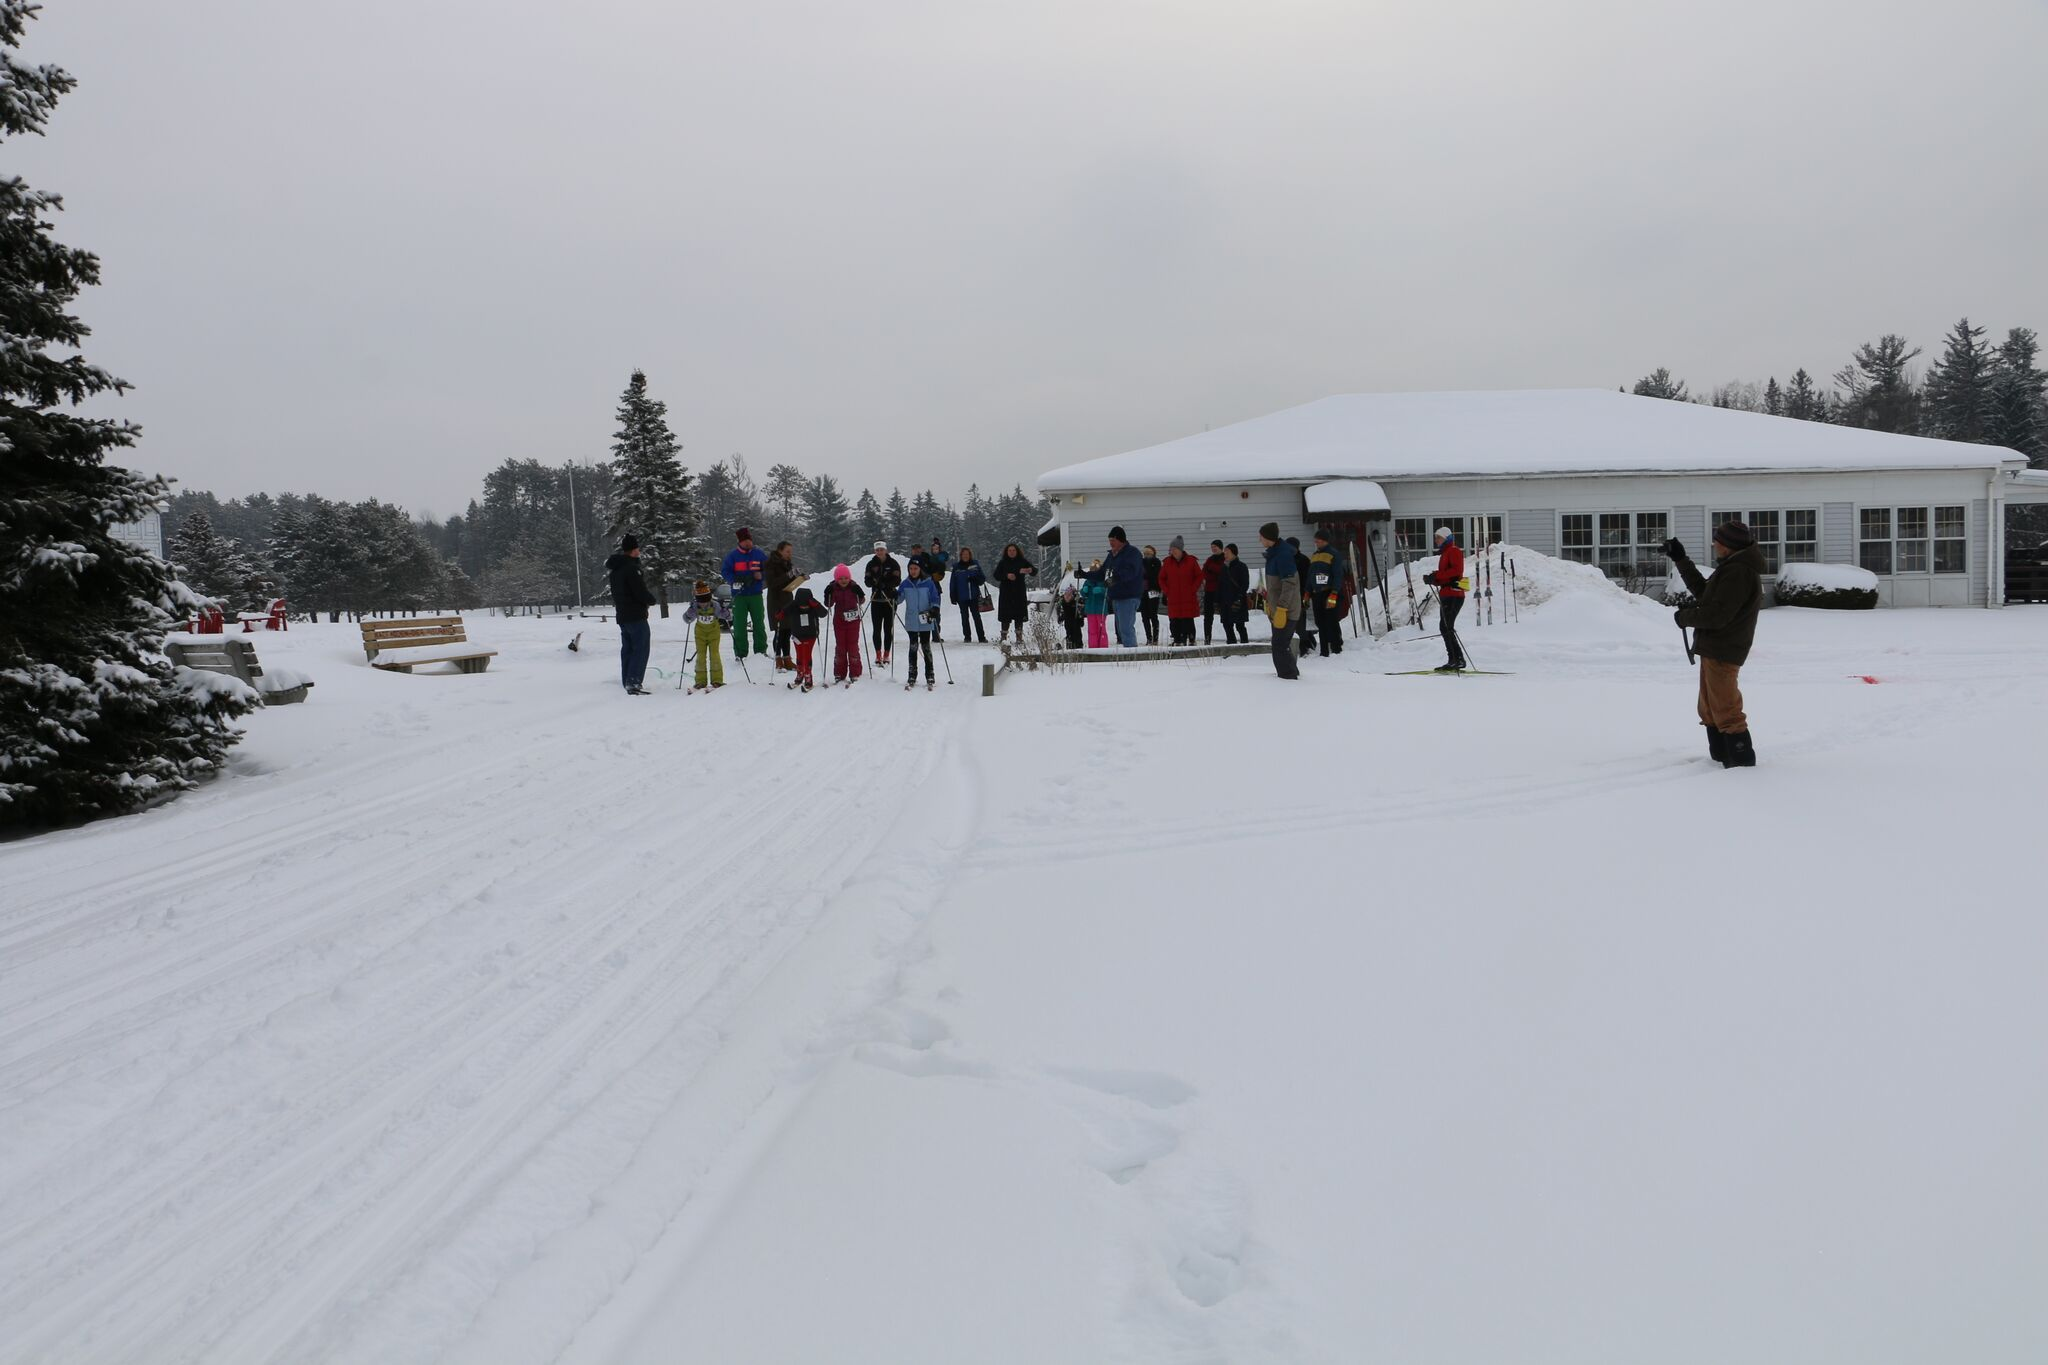 Ski race at the Best Western